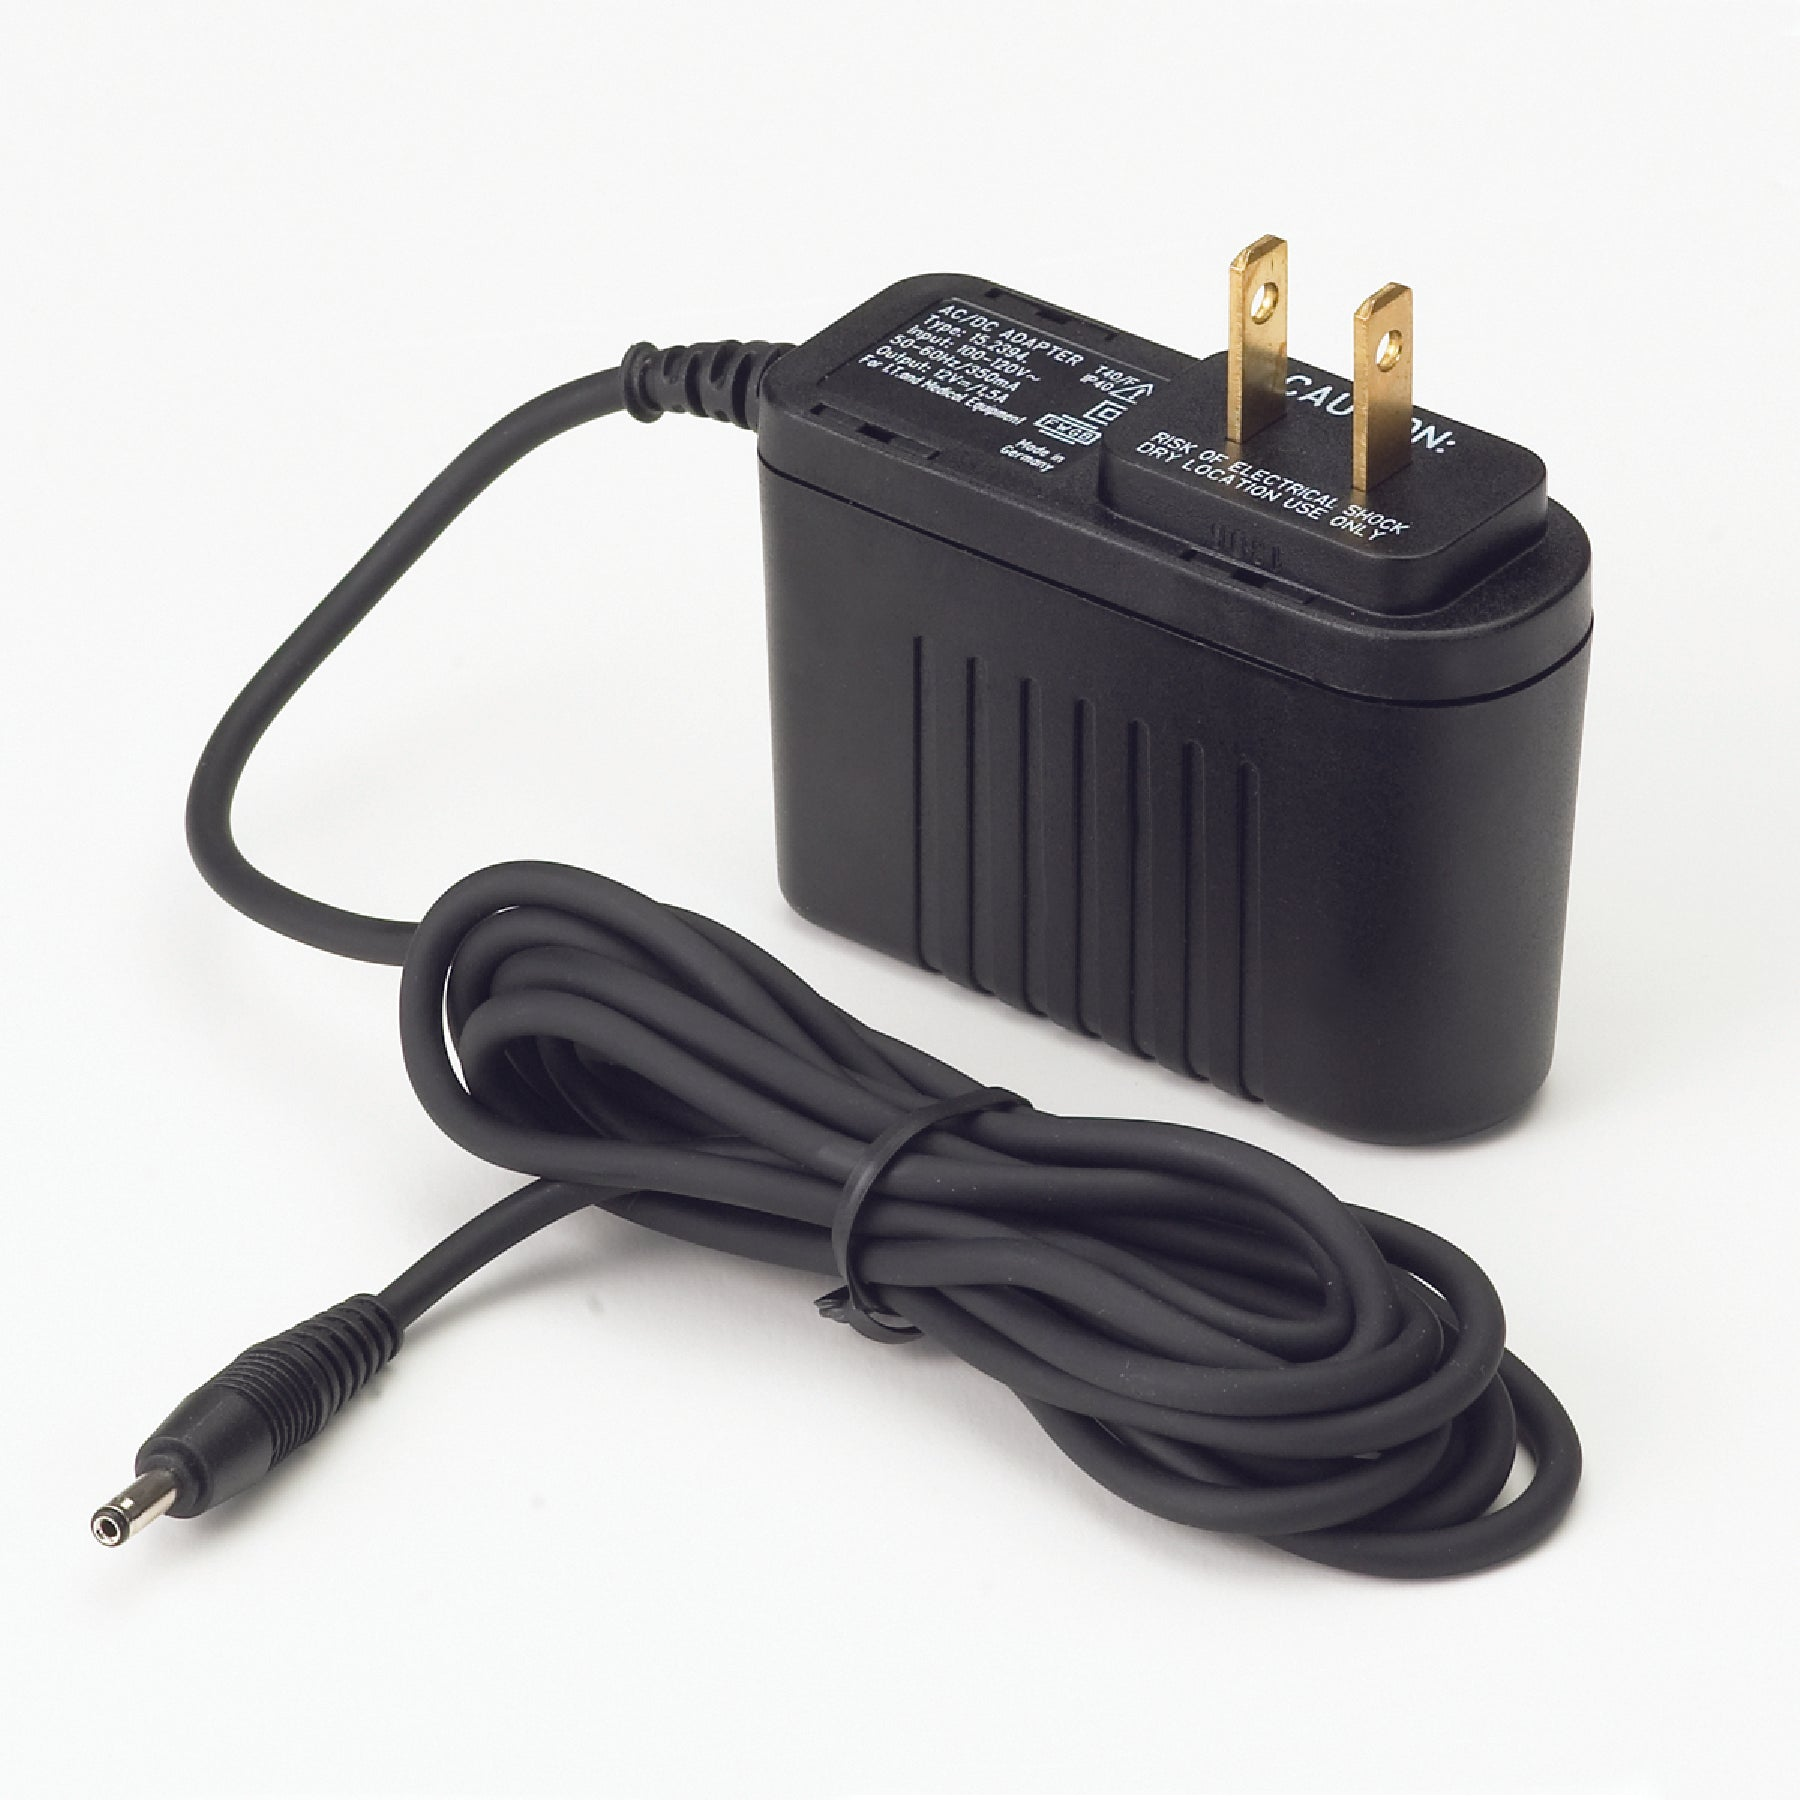 InnoSpire Mini (Formerly MiniElite) AC Power Adapter